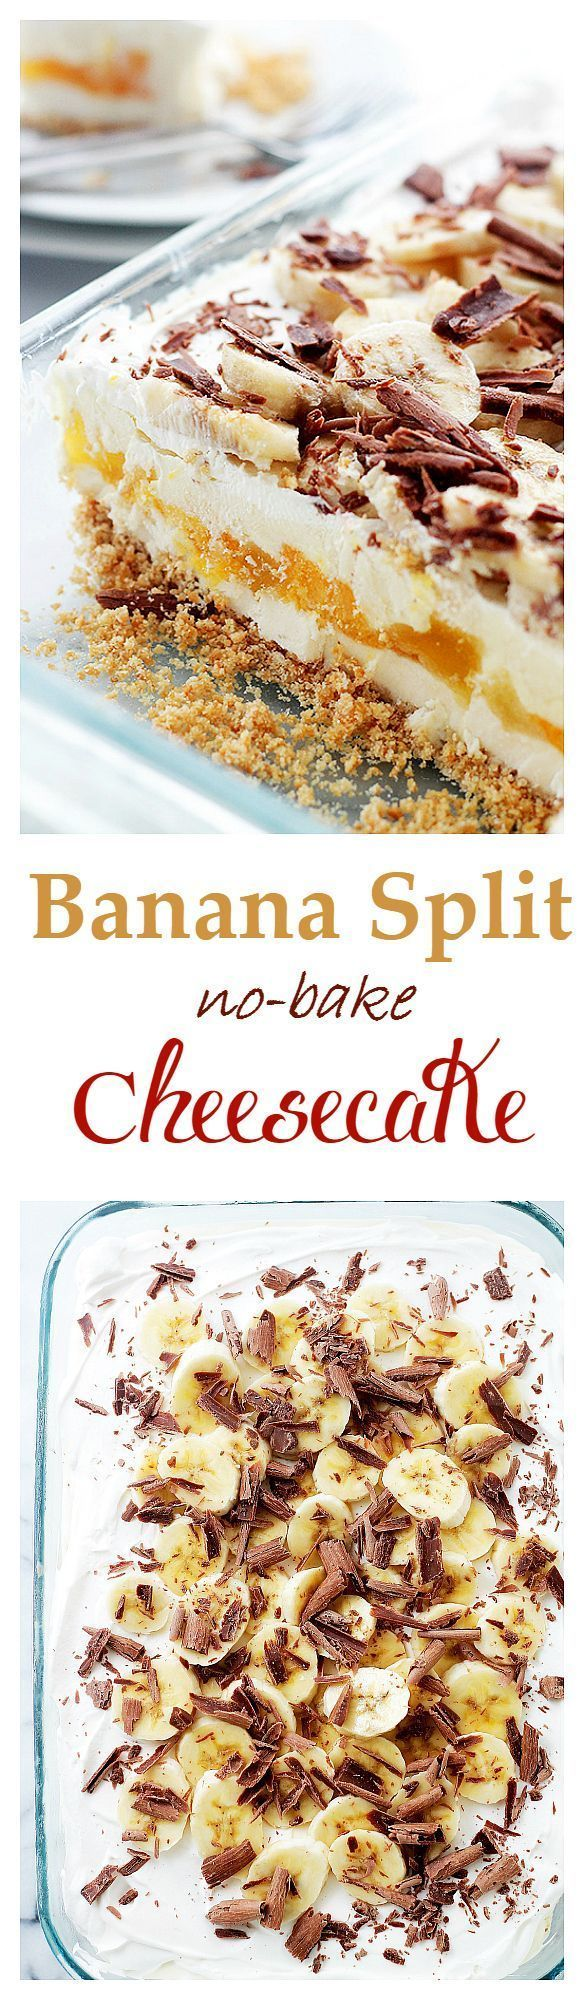 Banana Split No-Bake Cheesecake | www.diethood.com | Graham Cracker Crust topped with a creamy cheesecake mixture, vanilla pudding, pineapples, bananas and whipped cream. The perfect dessert for potlucks! | #dessert #cheesecake